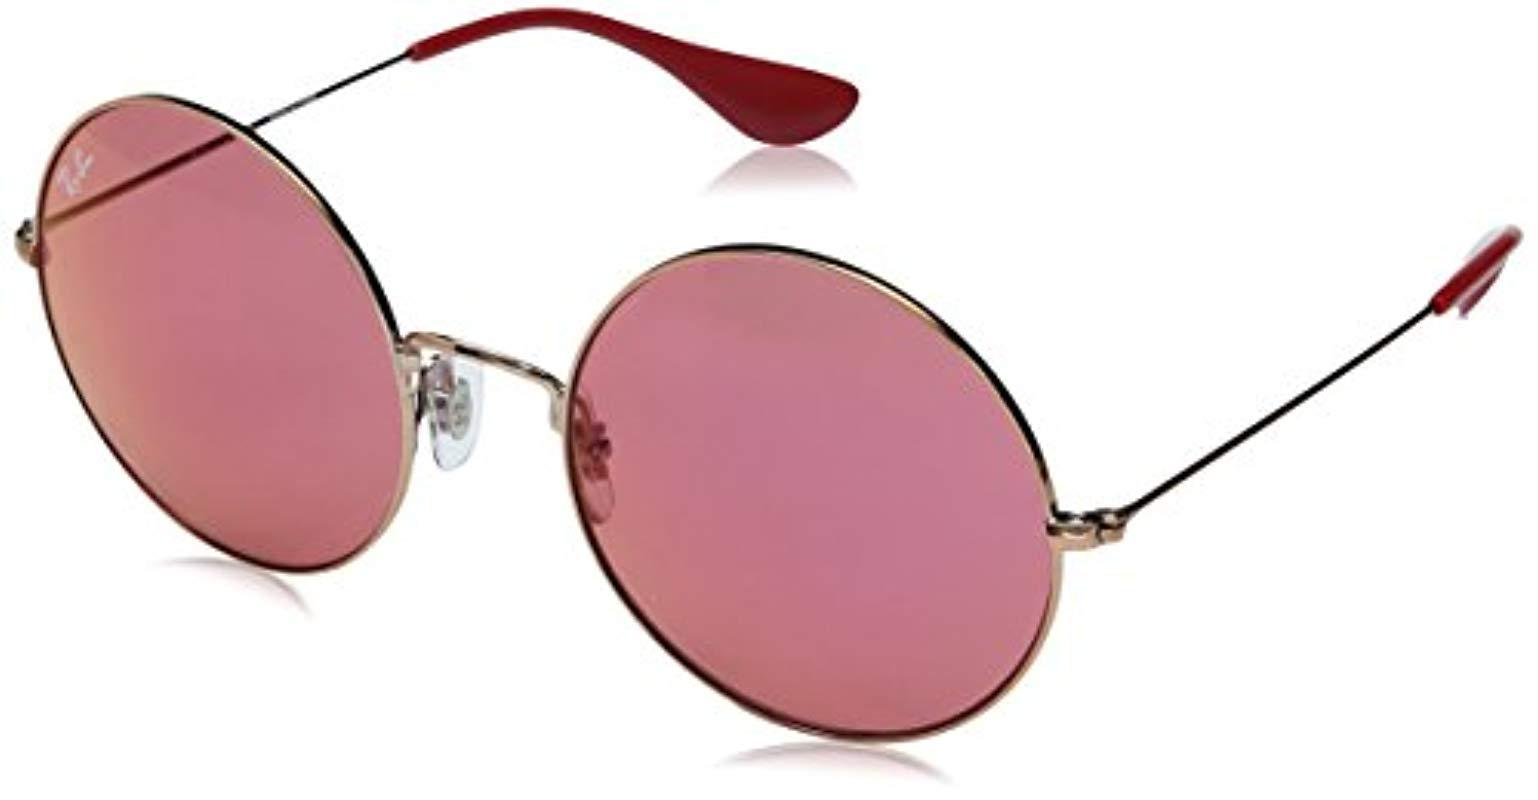 0adf072d3e6 Lyst - Ray-Ban Ja Jo Metal Round Sunglasses In Shiny Copper Red ...